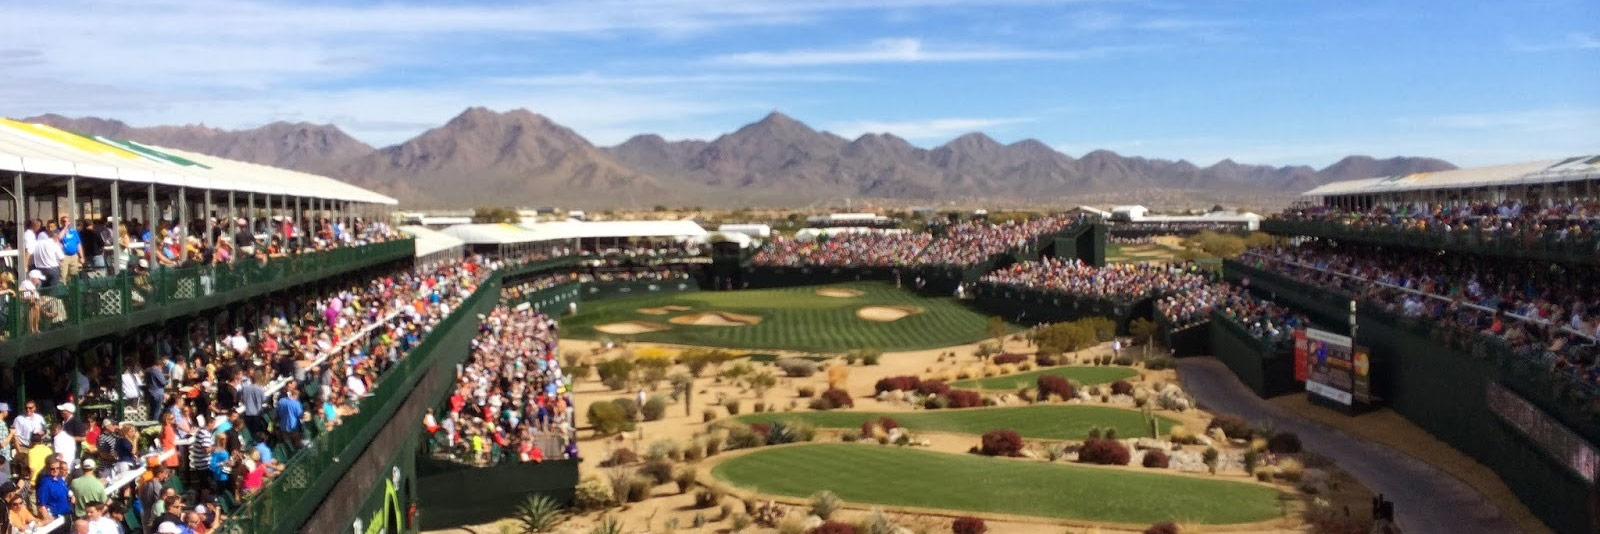 "Phoenix / Scottsdale Package: Phoenix Open - ""Greatest Show on Grass"" Stay and Play at $199 per person, per day!"